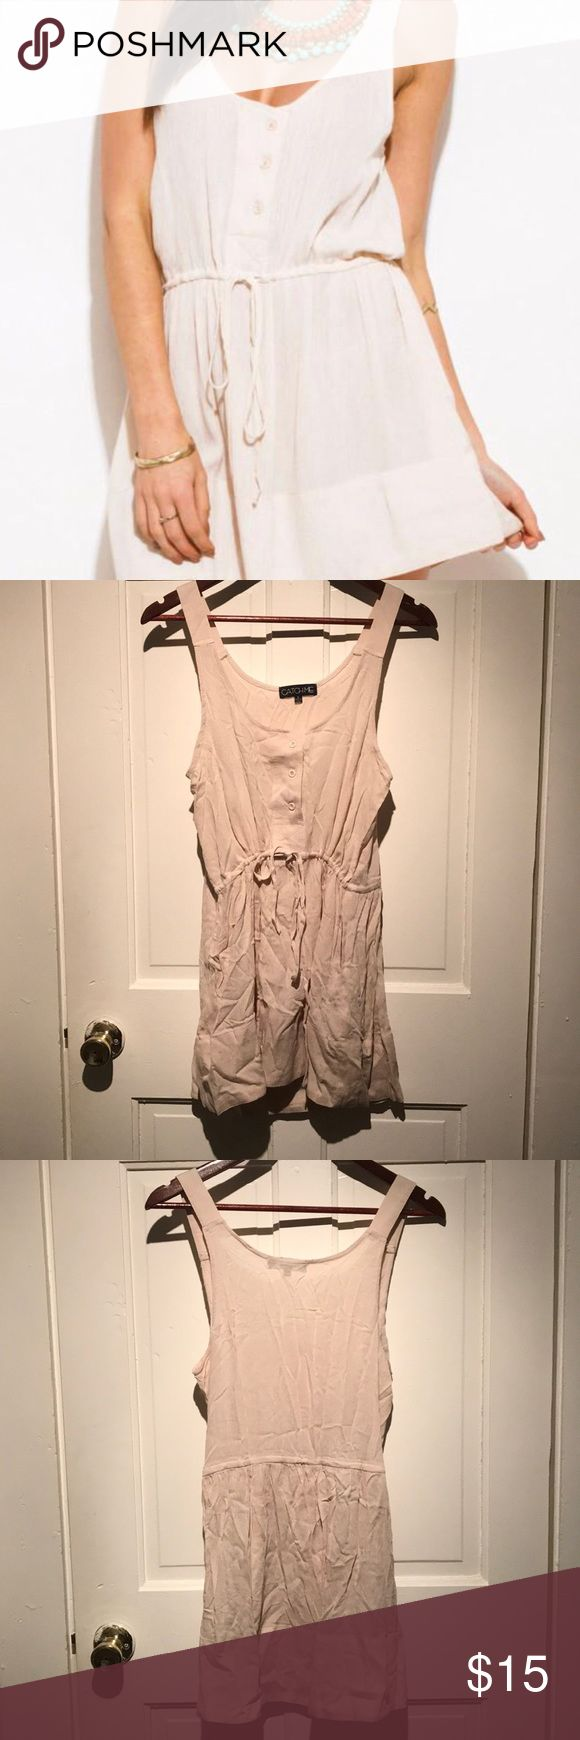 Sundress Wrinkly from packaging. Never worn. Hanger strings in tact. String at waist can be tightened or loosen. Buttons can be used. See through. Has pockets. 100% rayon. Dresses Mini